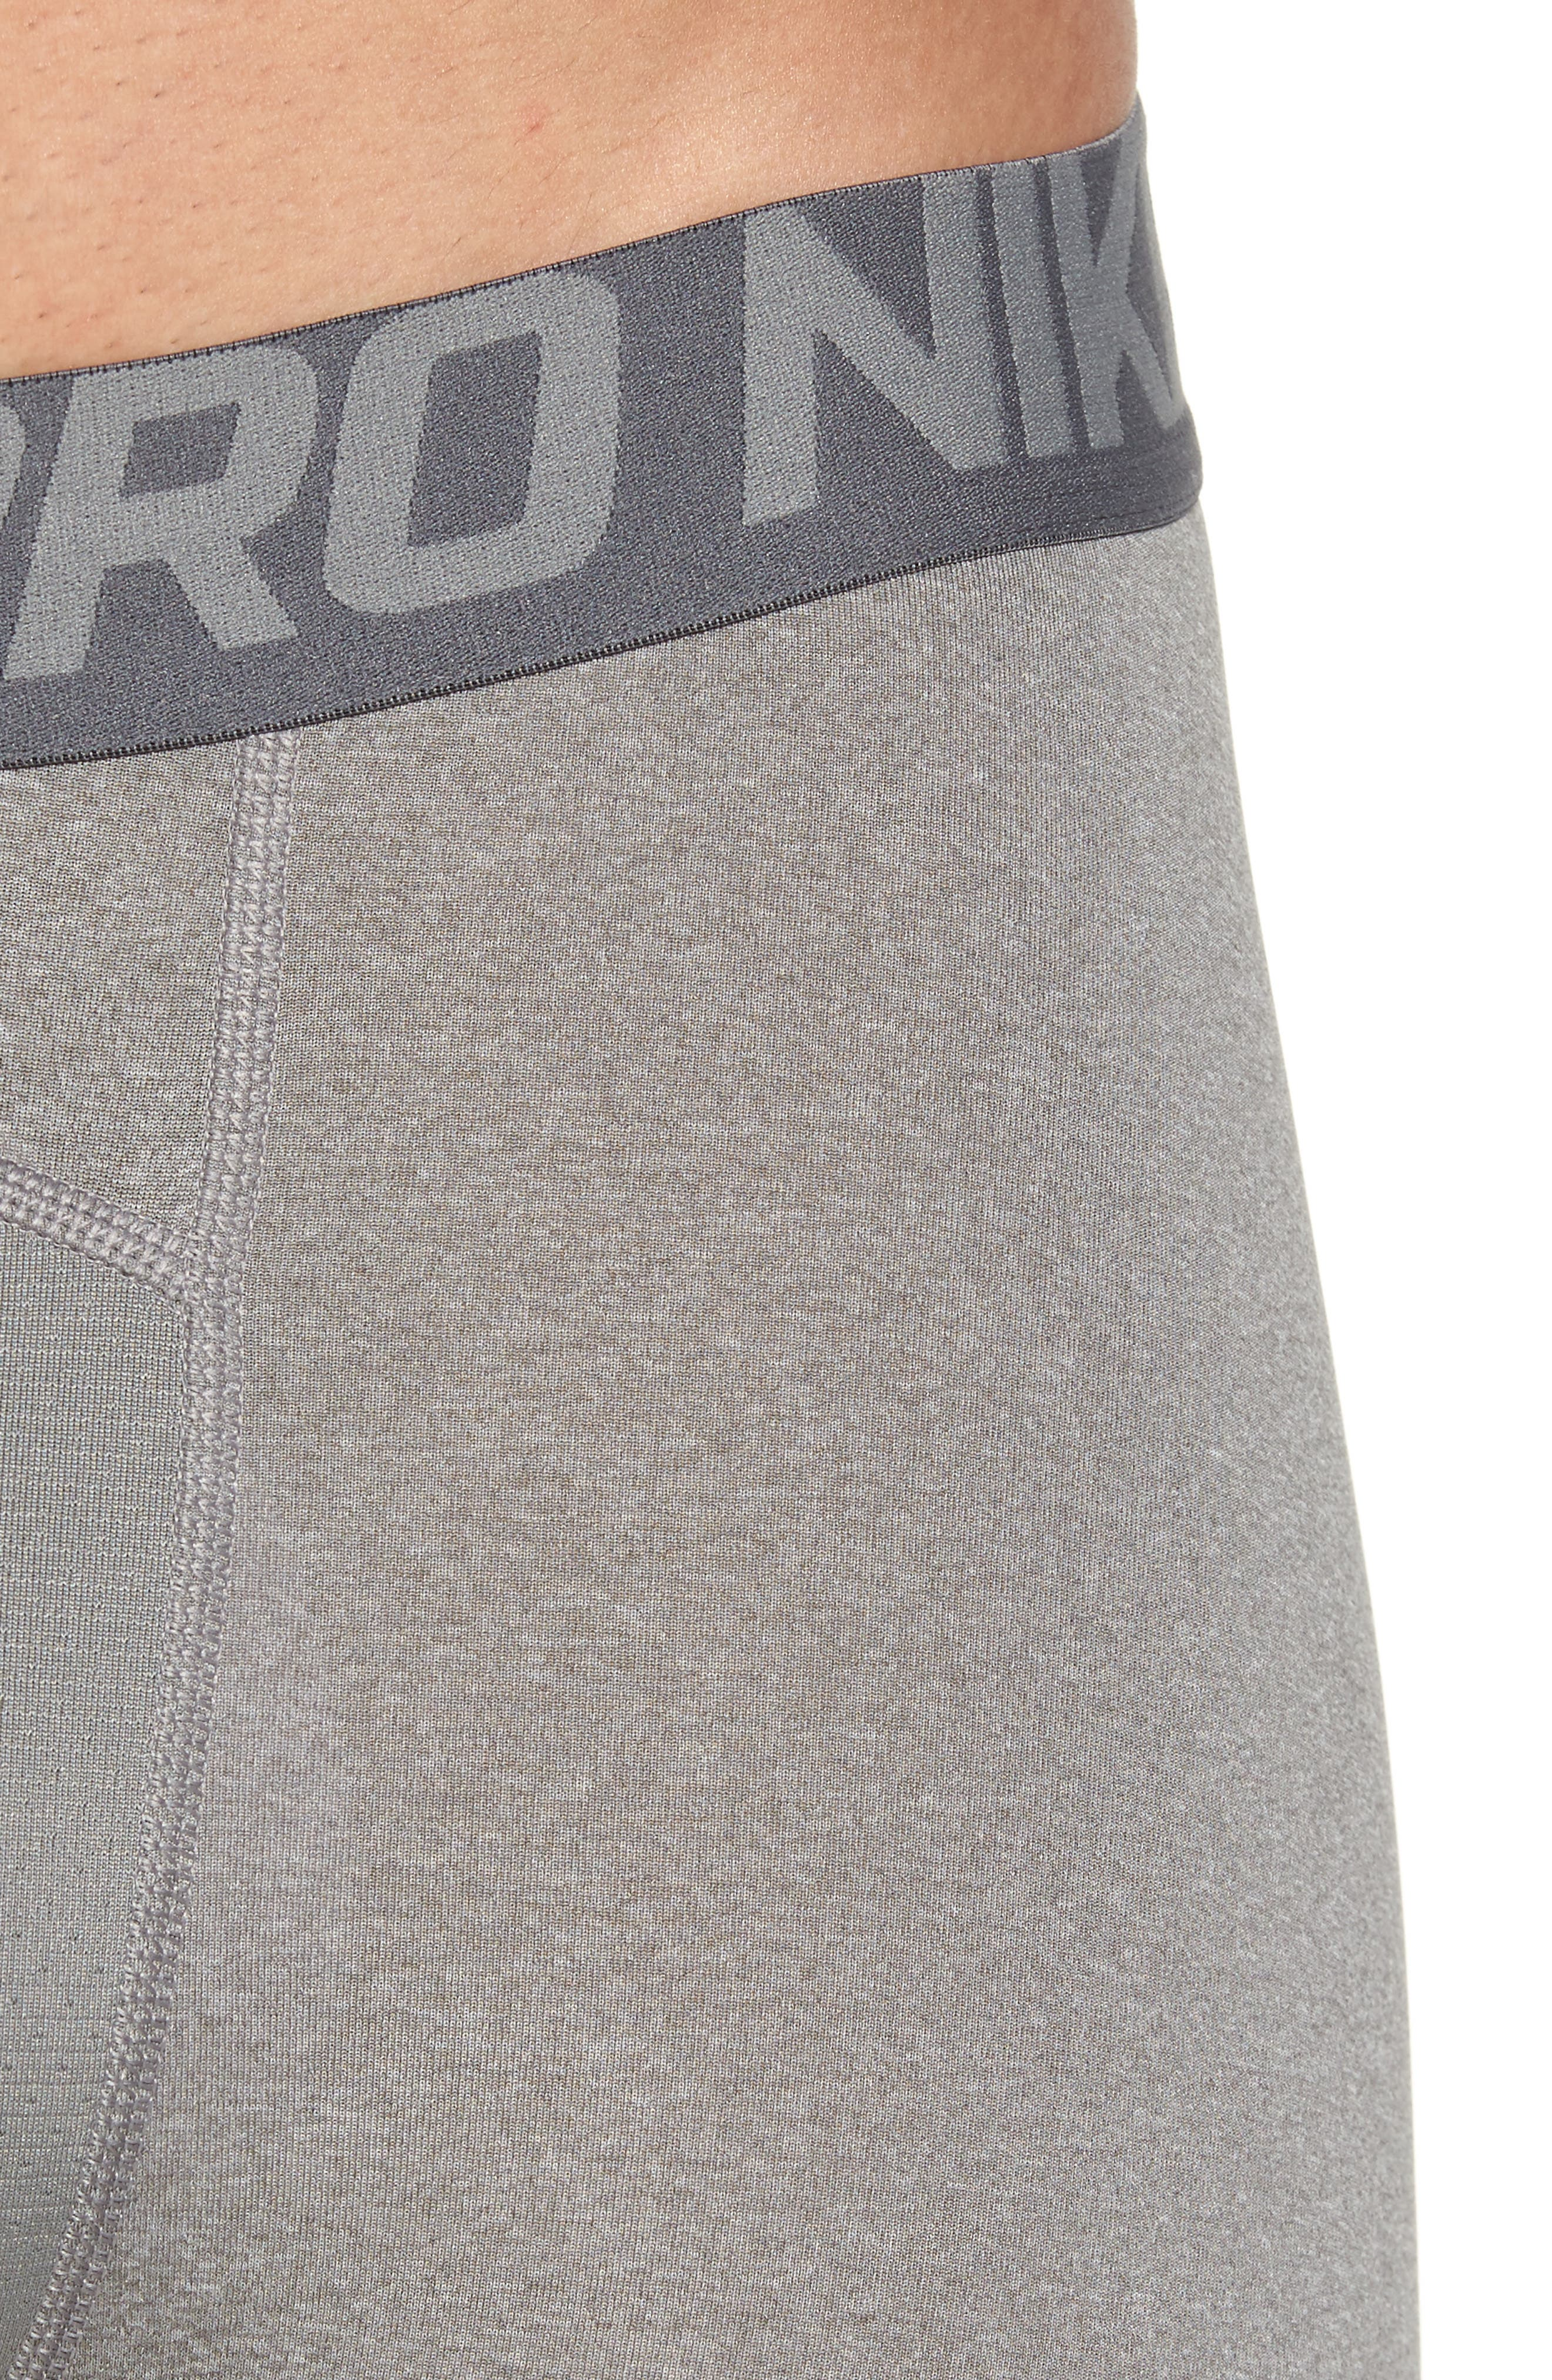 Pro Training Tights,                             Alternate thumbnail 4, color,                             Carbon Heather/Dark Grey/Black